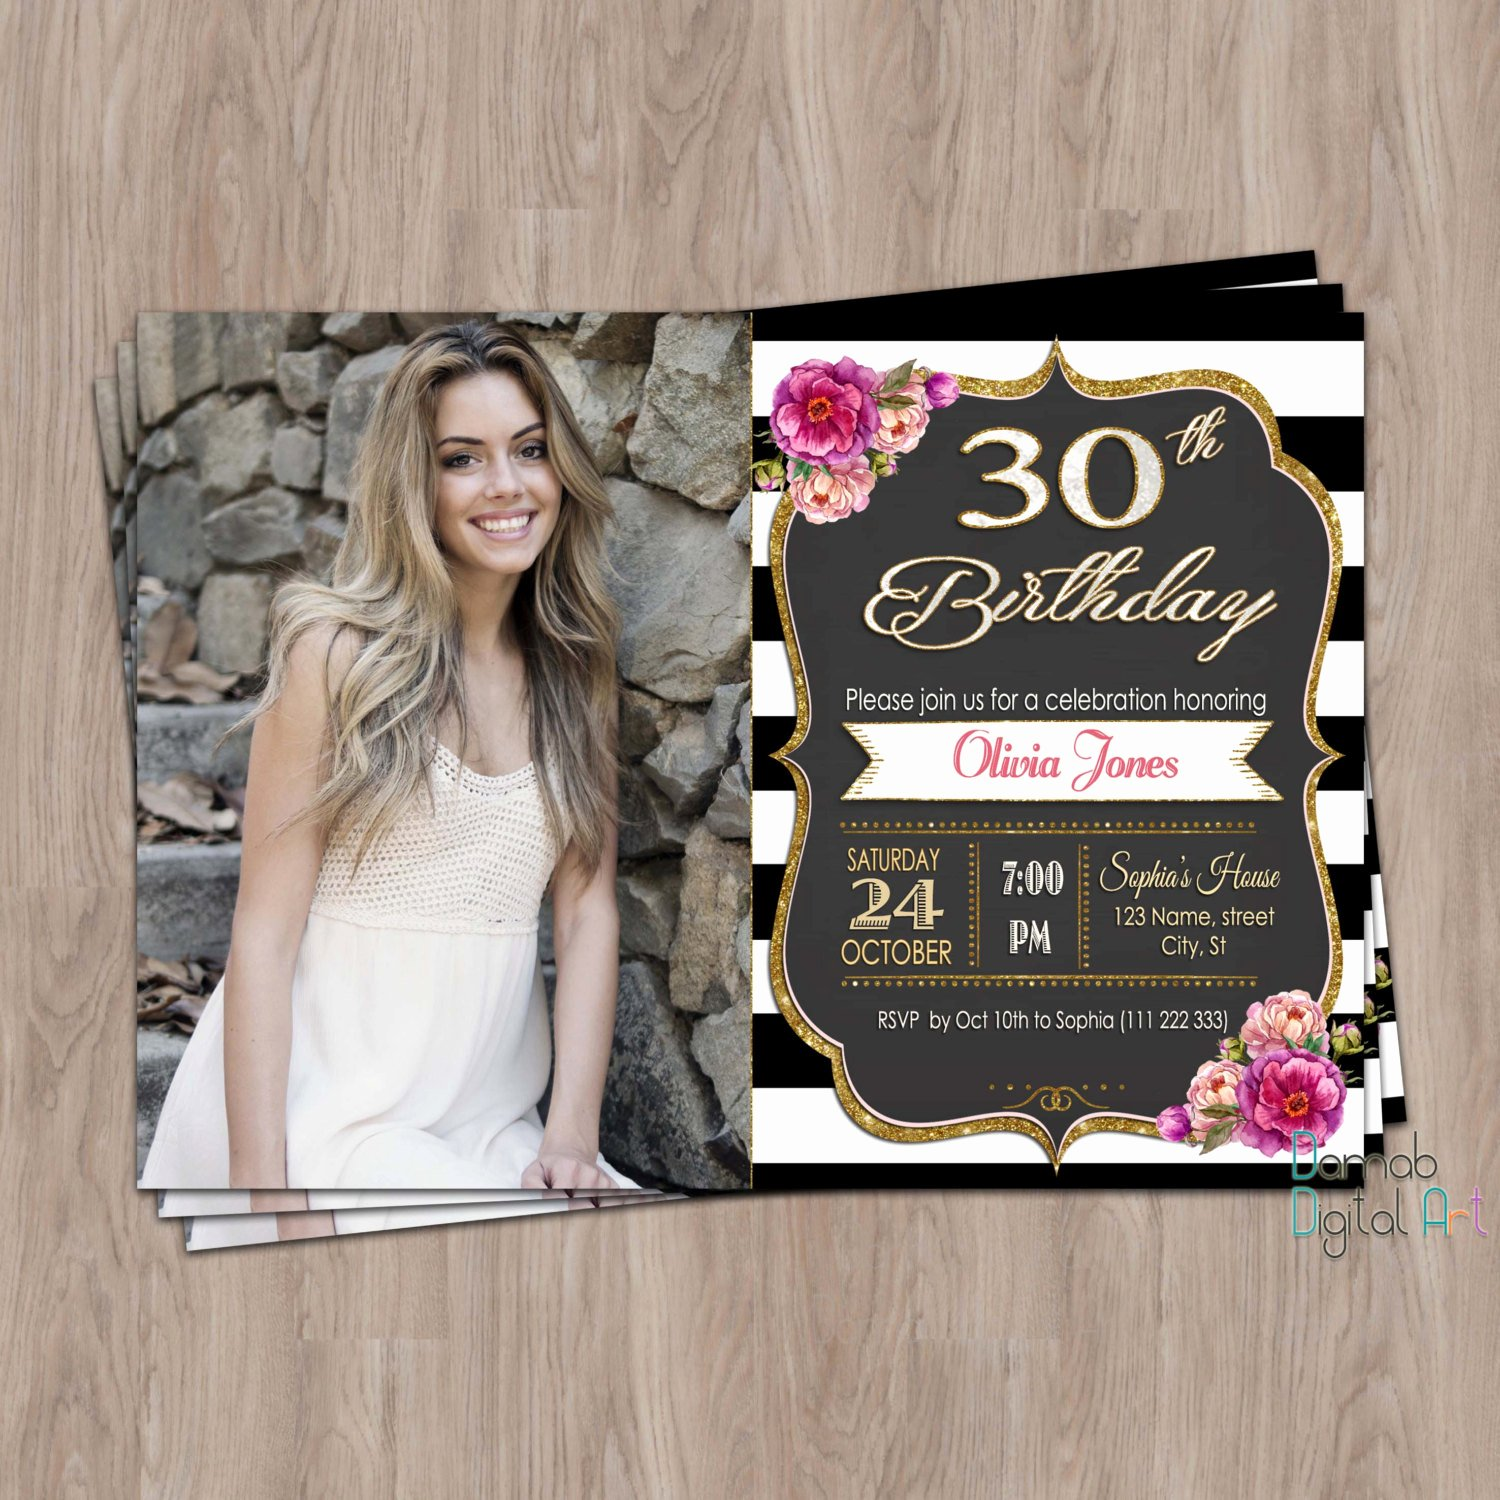 Birthday Invitations for Women Beautiful 30th Birthday Invitation 30th Birthday Invitation for Women